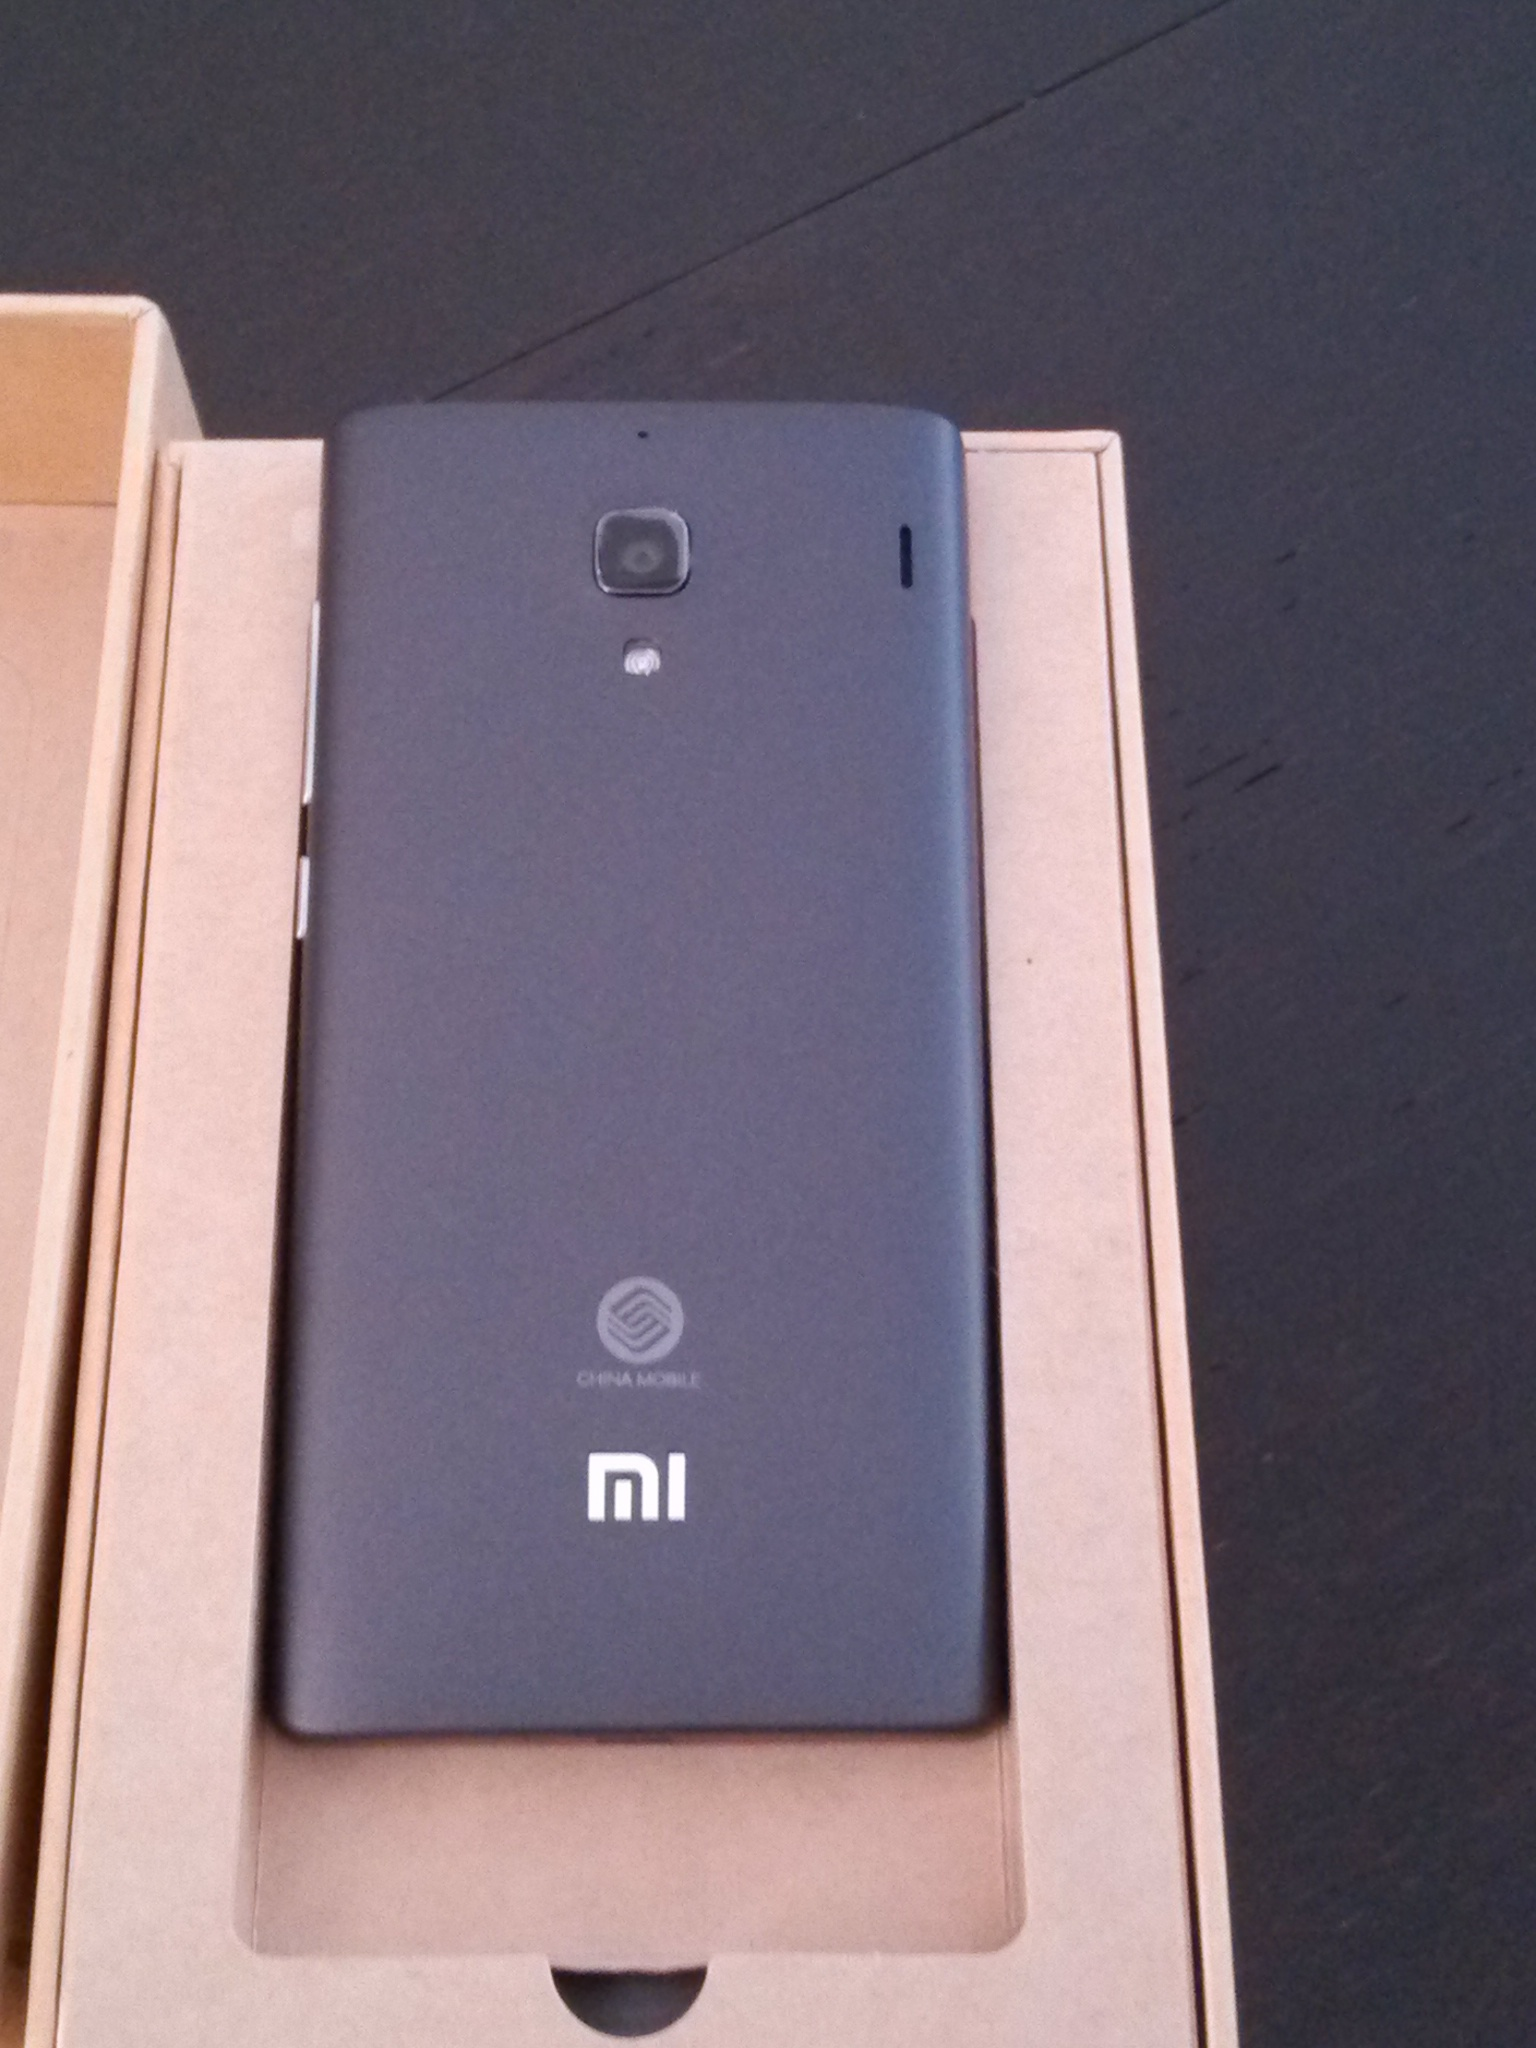 With this brand new unique phone in my hand I checked the content of the box and it had the same layout as the Xiaomi Mi2 The battery is different and